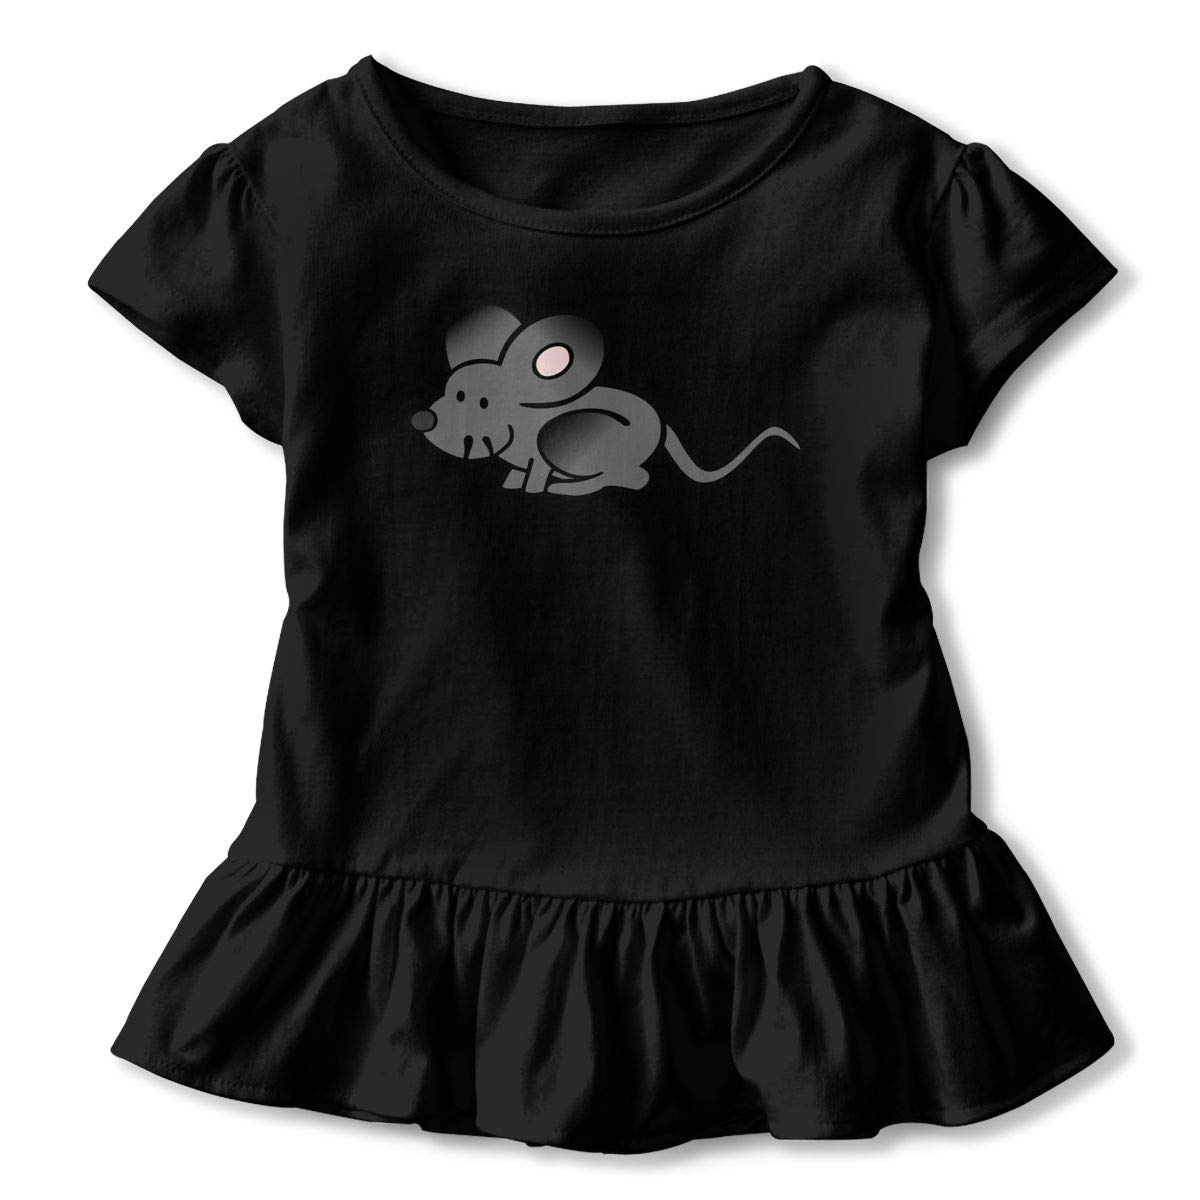 Cartoon Mouse Shirt Comfort Toddler//Infant Flounced T Shirts Tee Shirts for 2-6T Baby Girls